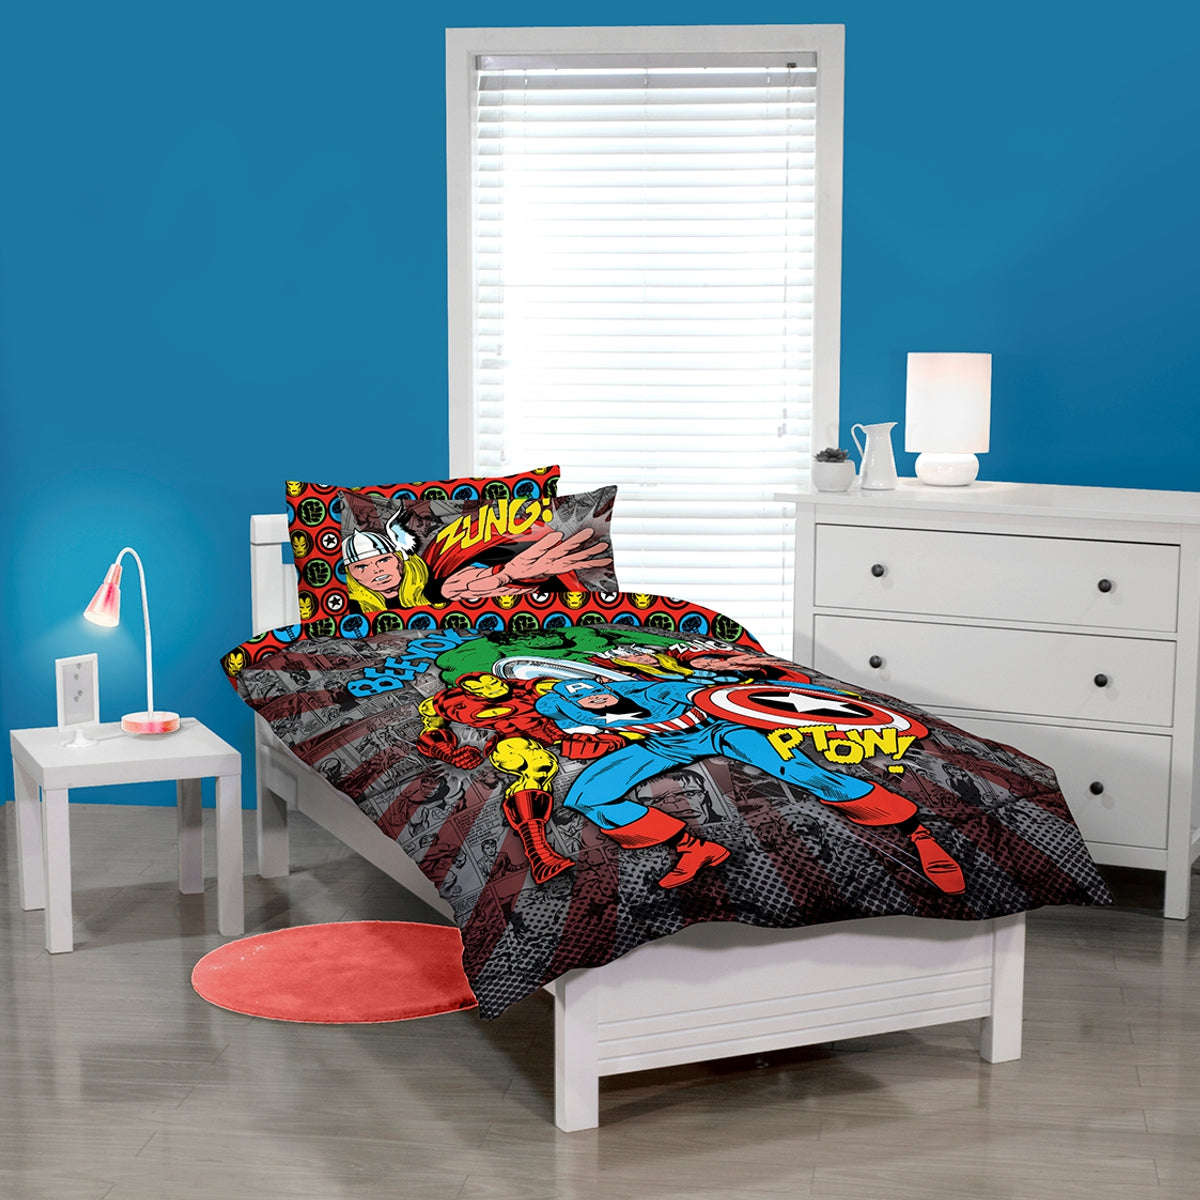 Avengers Quilt Cover Set | Baines Manchester : avengers quilt cover australia - Adamdwight.com